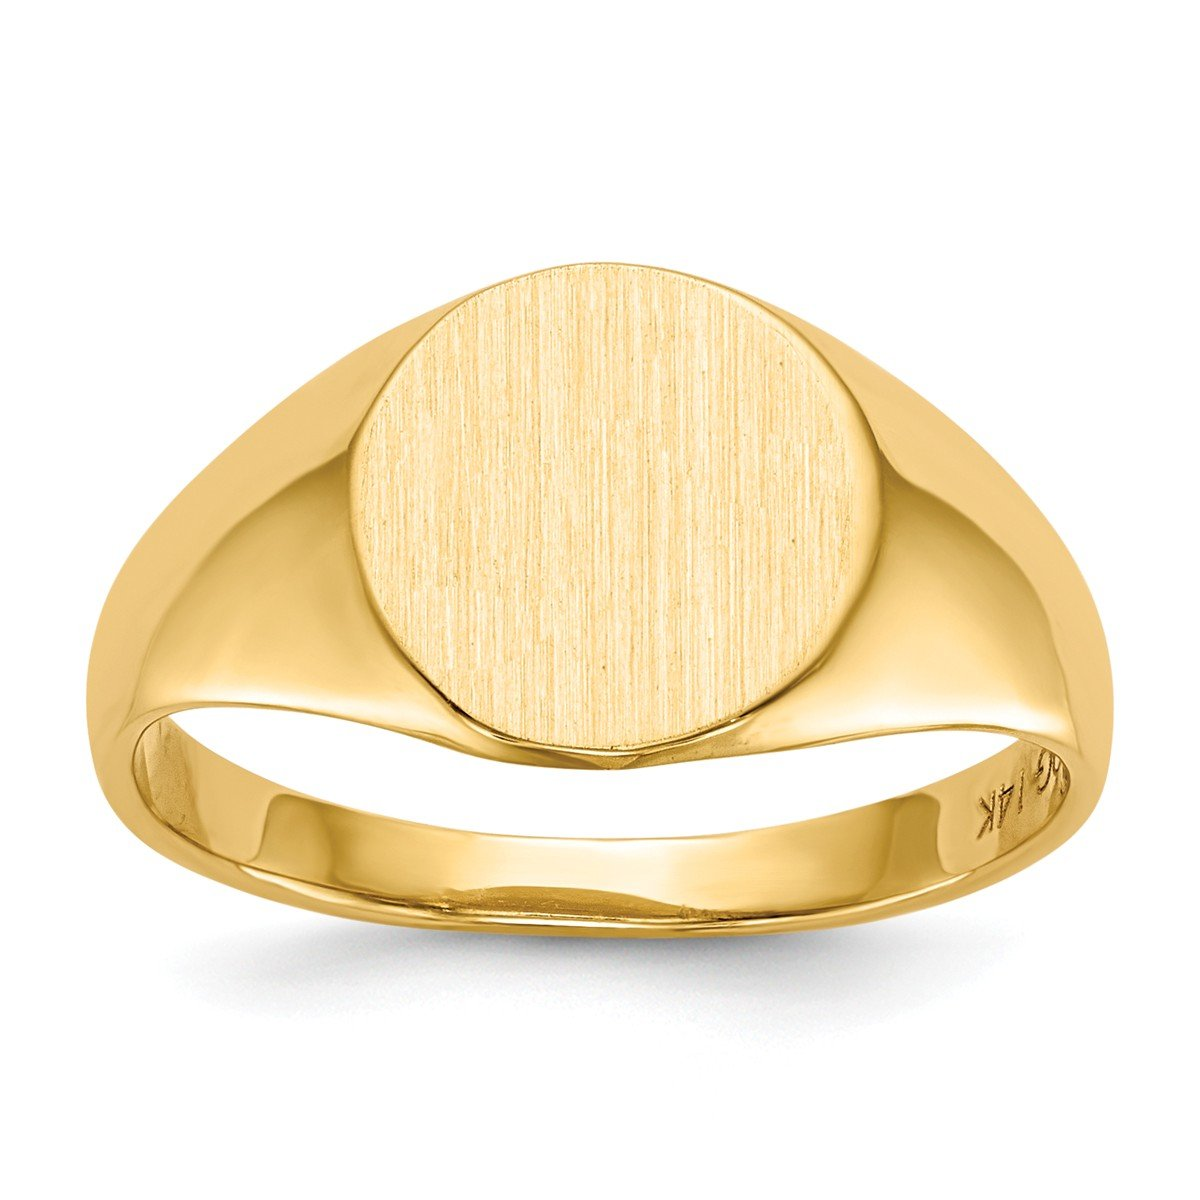 Roy Rose Jewelry 14K Yellow Gold Open Back 9.8mm Round Signet Ring Custom Personailzed with Free Engraving Available Initial or Monogram ~ Size 8 by Roy Rose Jewelry (Image #1)